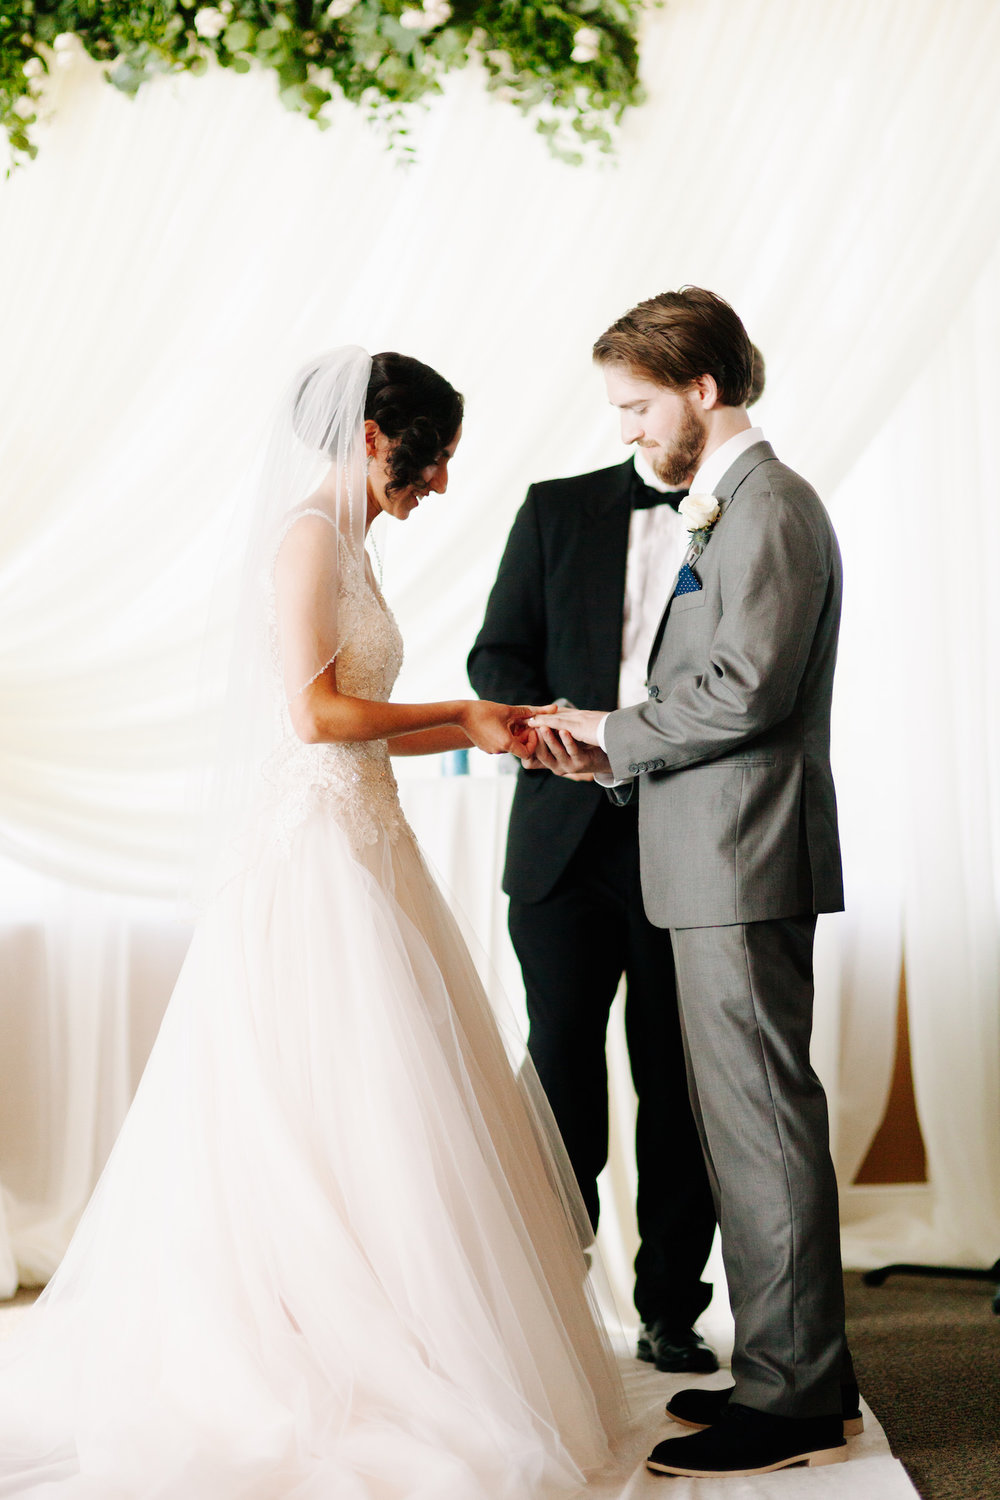 Jared _ Melissa - Ceremony - Jake _ Katie Photography_182.jpg